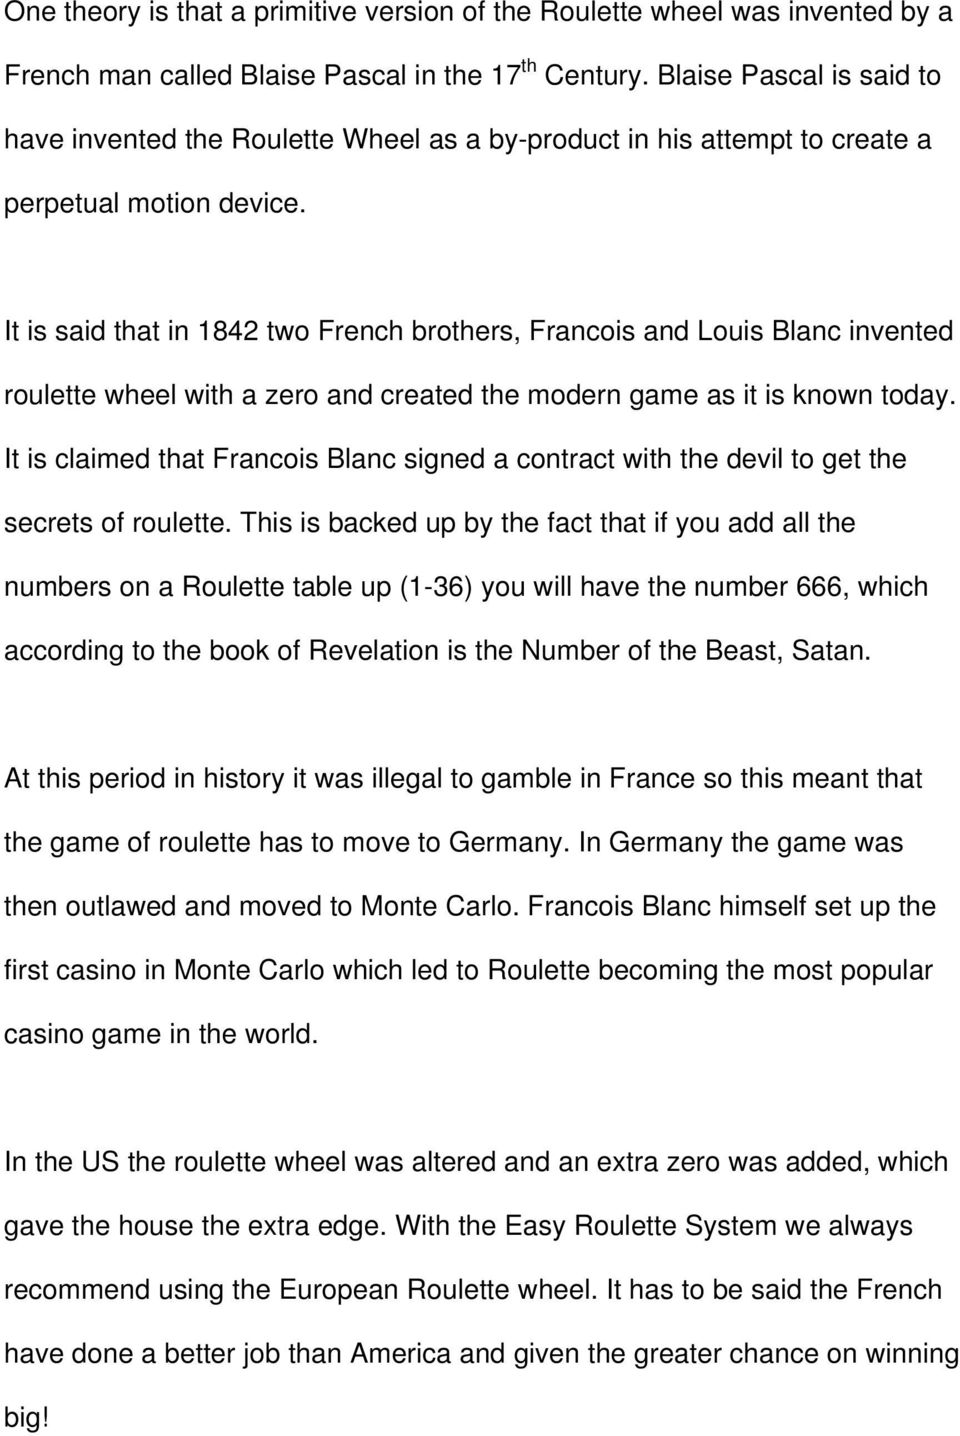 It is said that in 1842 two French brothers, Francois and Louis Blanc invented roulette wheel with a zero and created the modern game as it is known today.